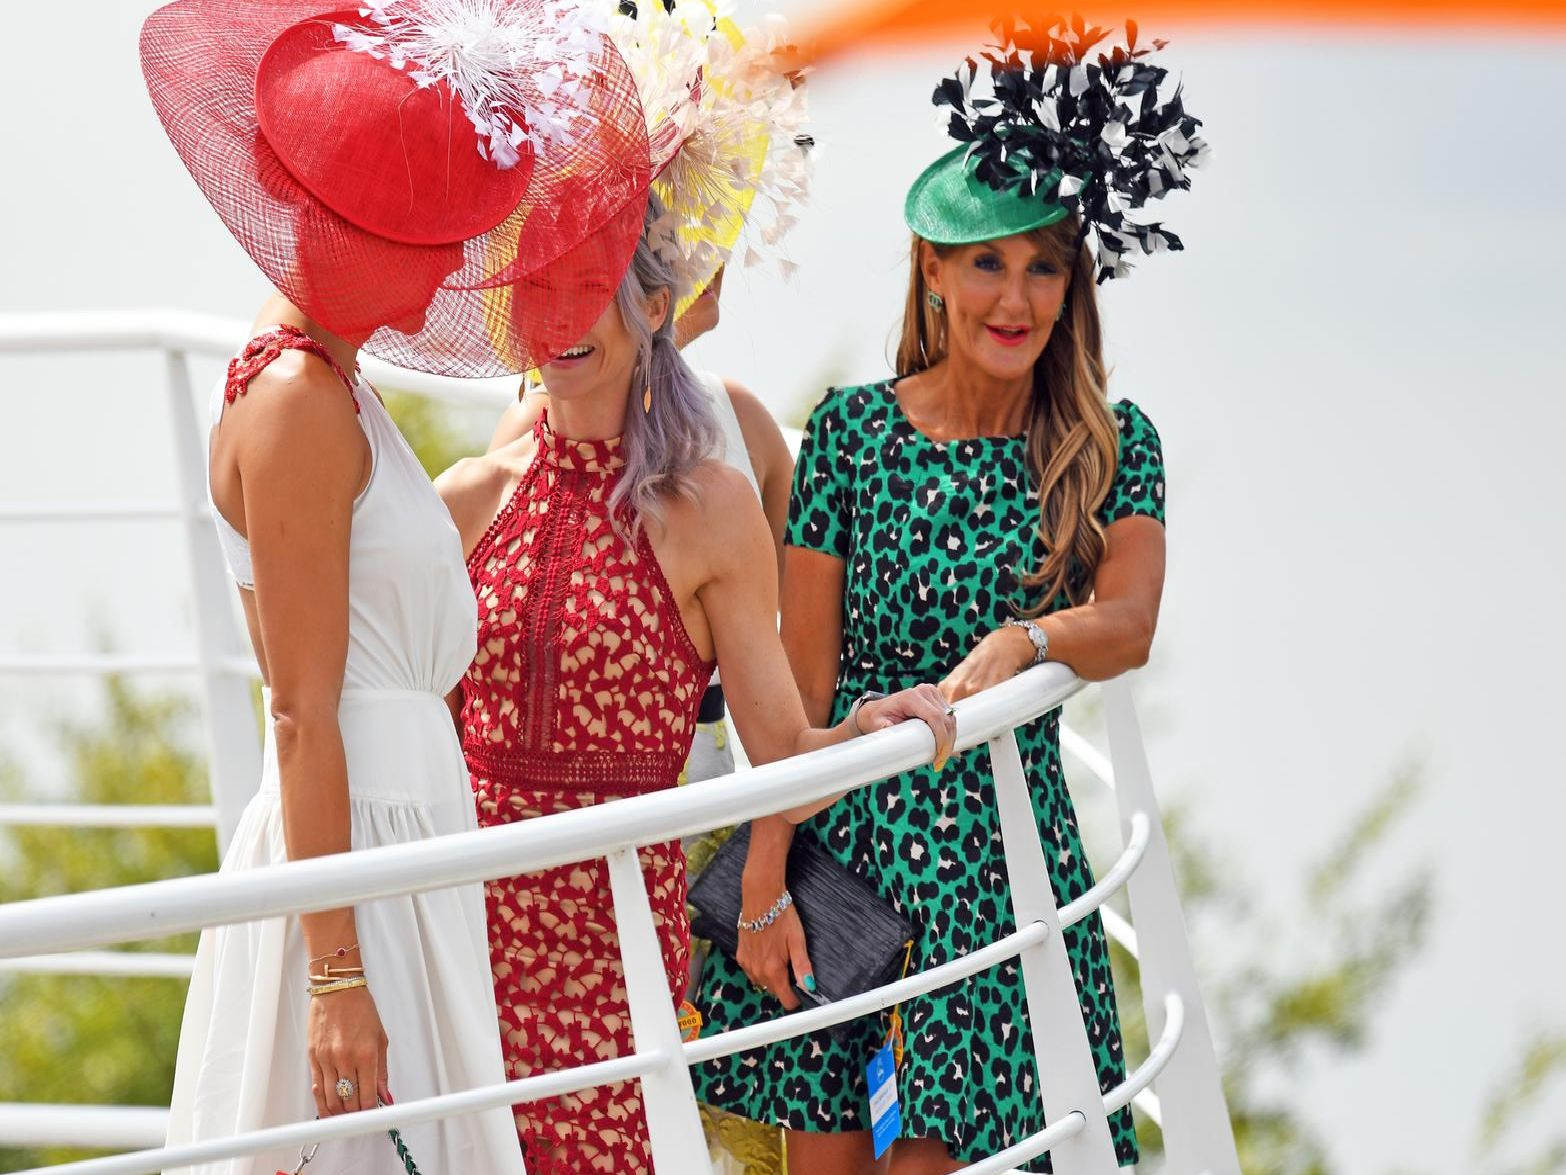 Ladies' Day at the 2019 Qatar Goodwood Festival / Pictures by Malcolm Wells